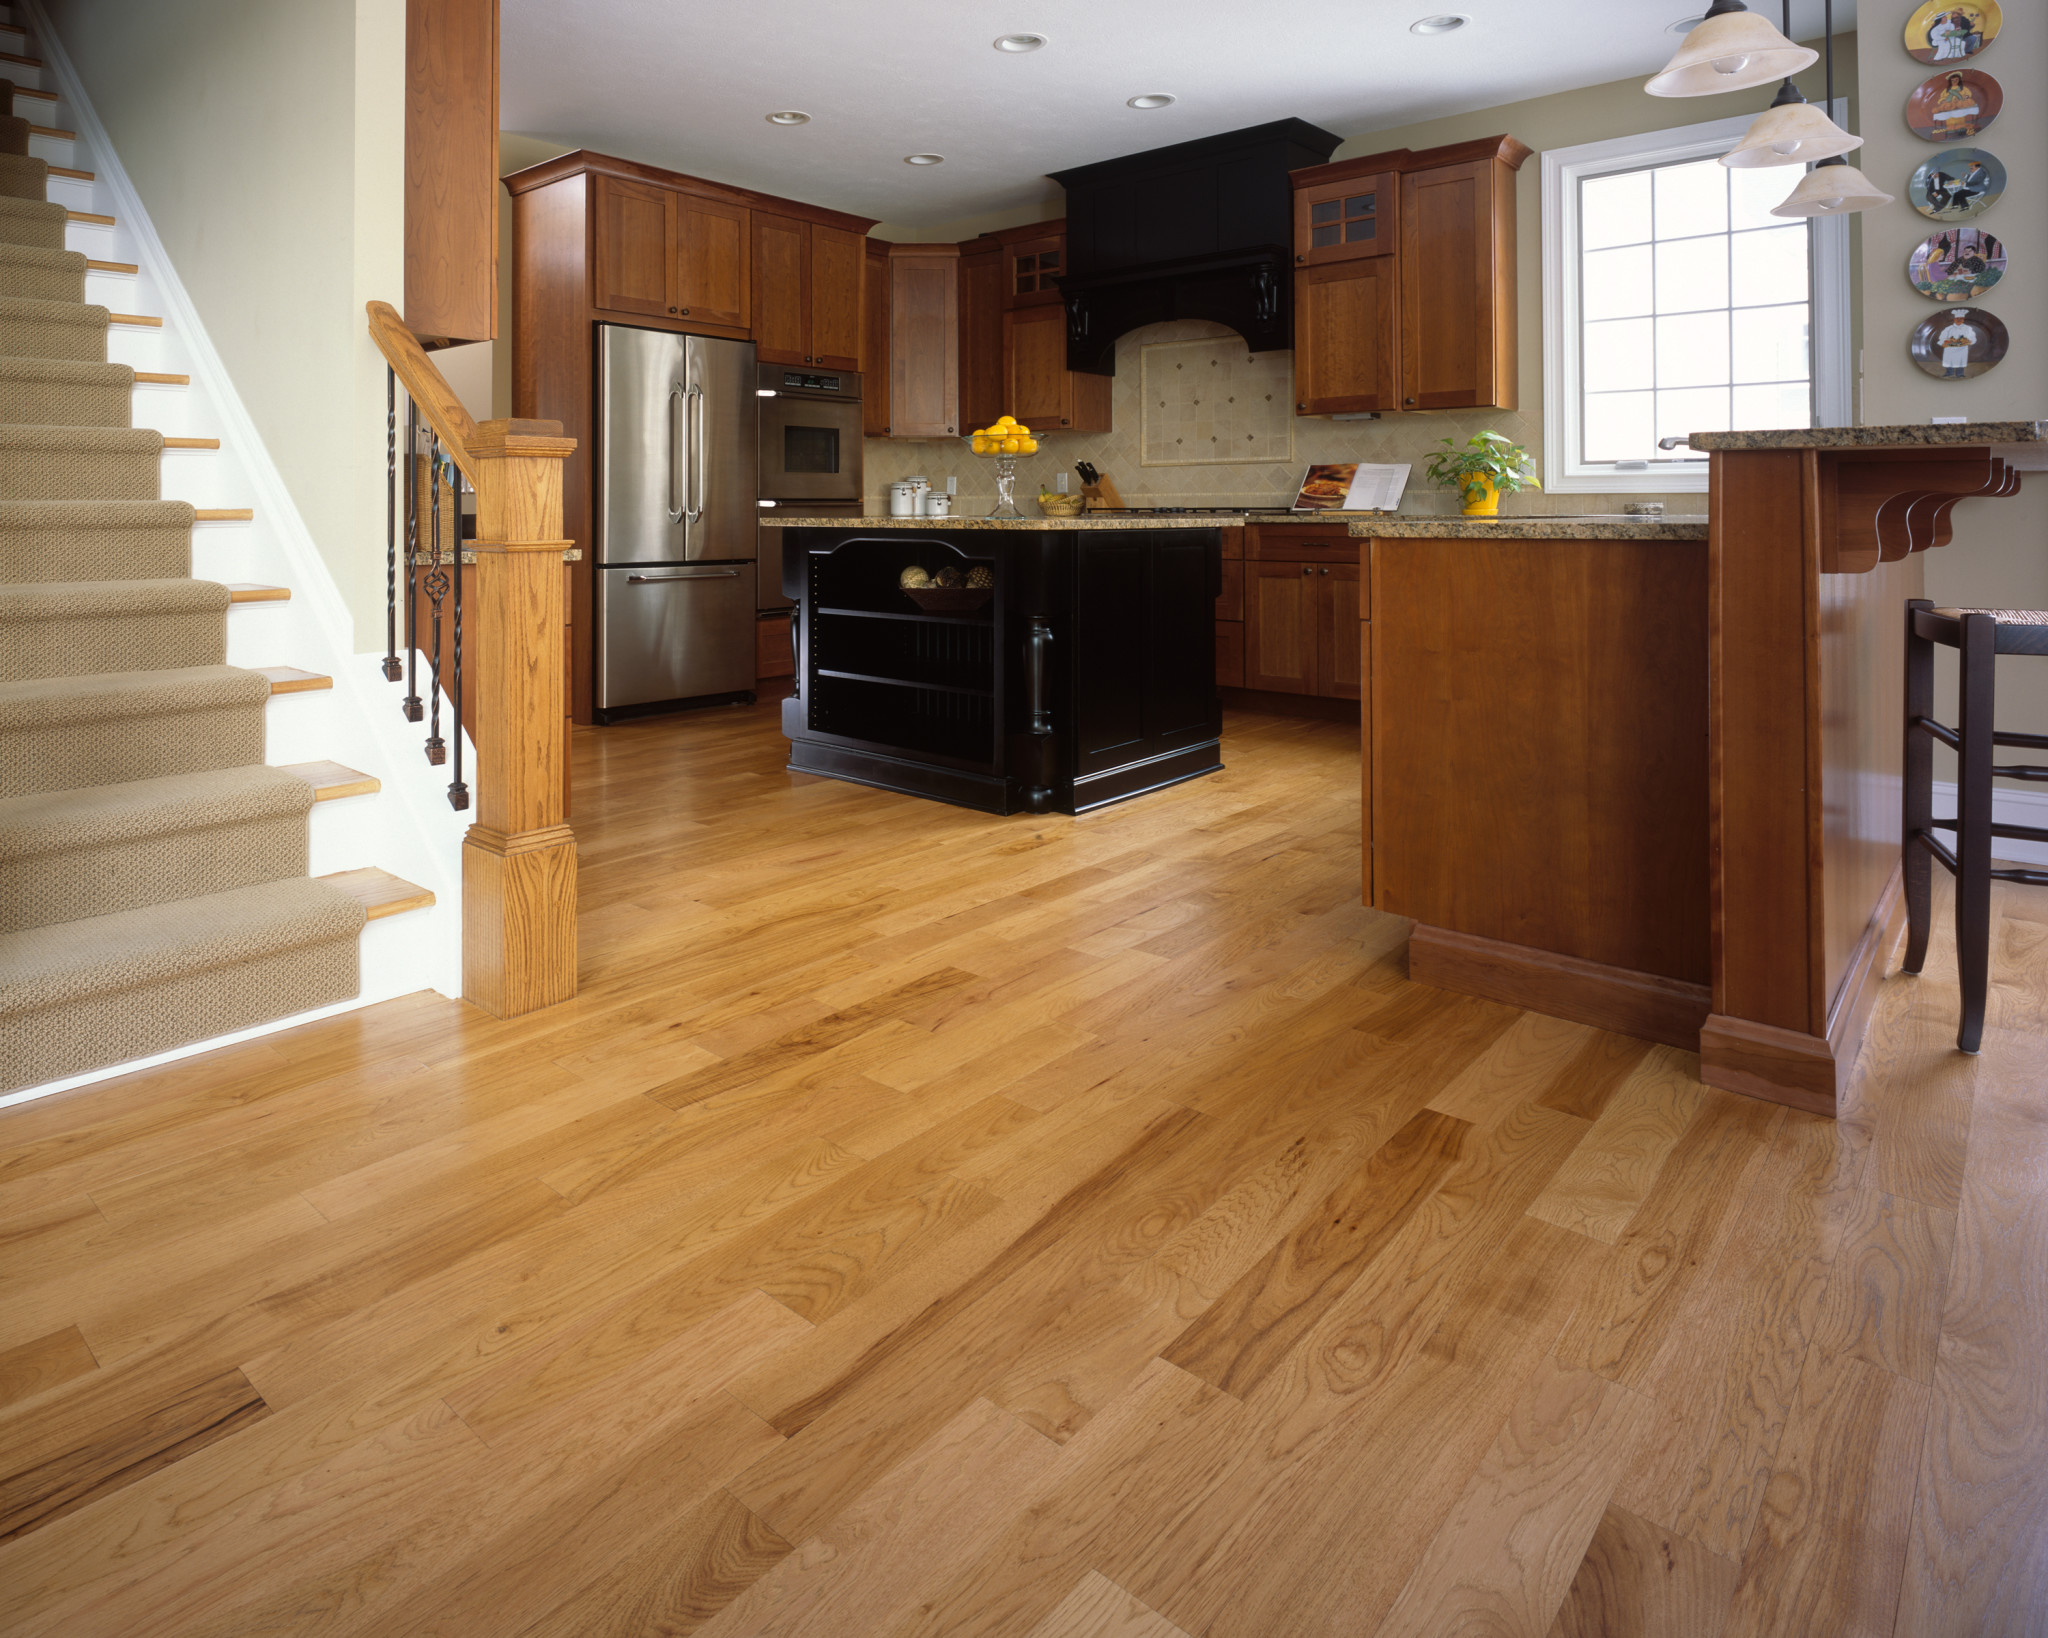 Wooden Floor For Kitchen Wood Floors Tile Linoleum Jmarvinhandyman